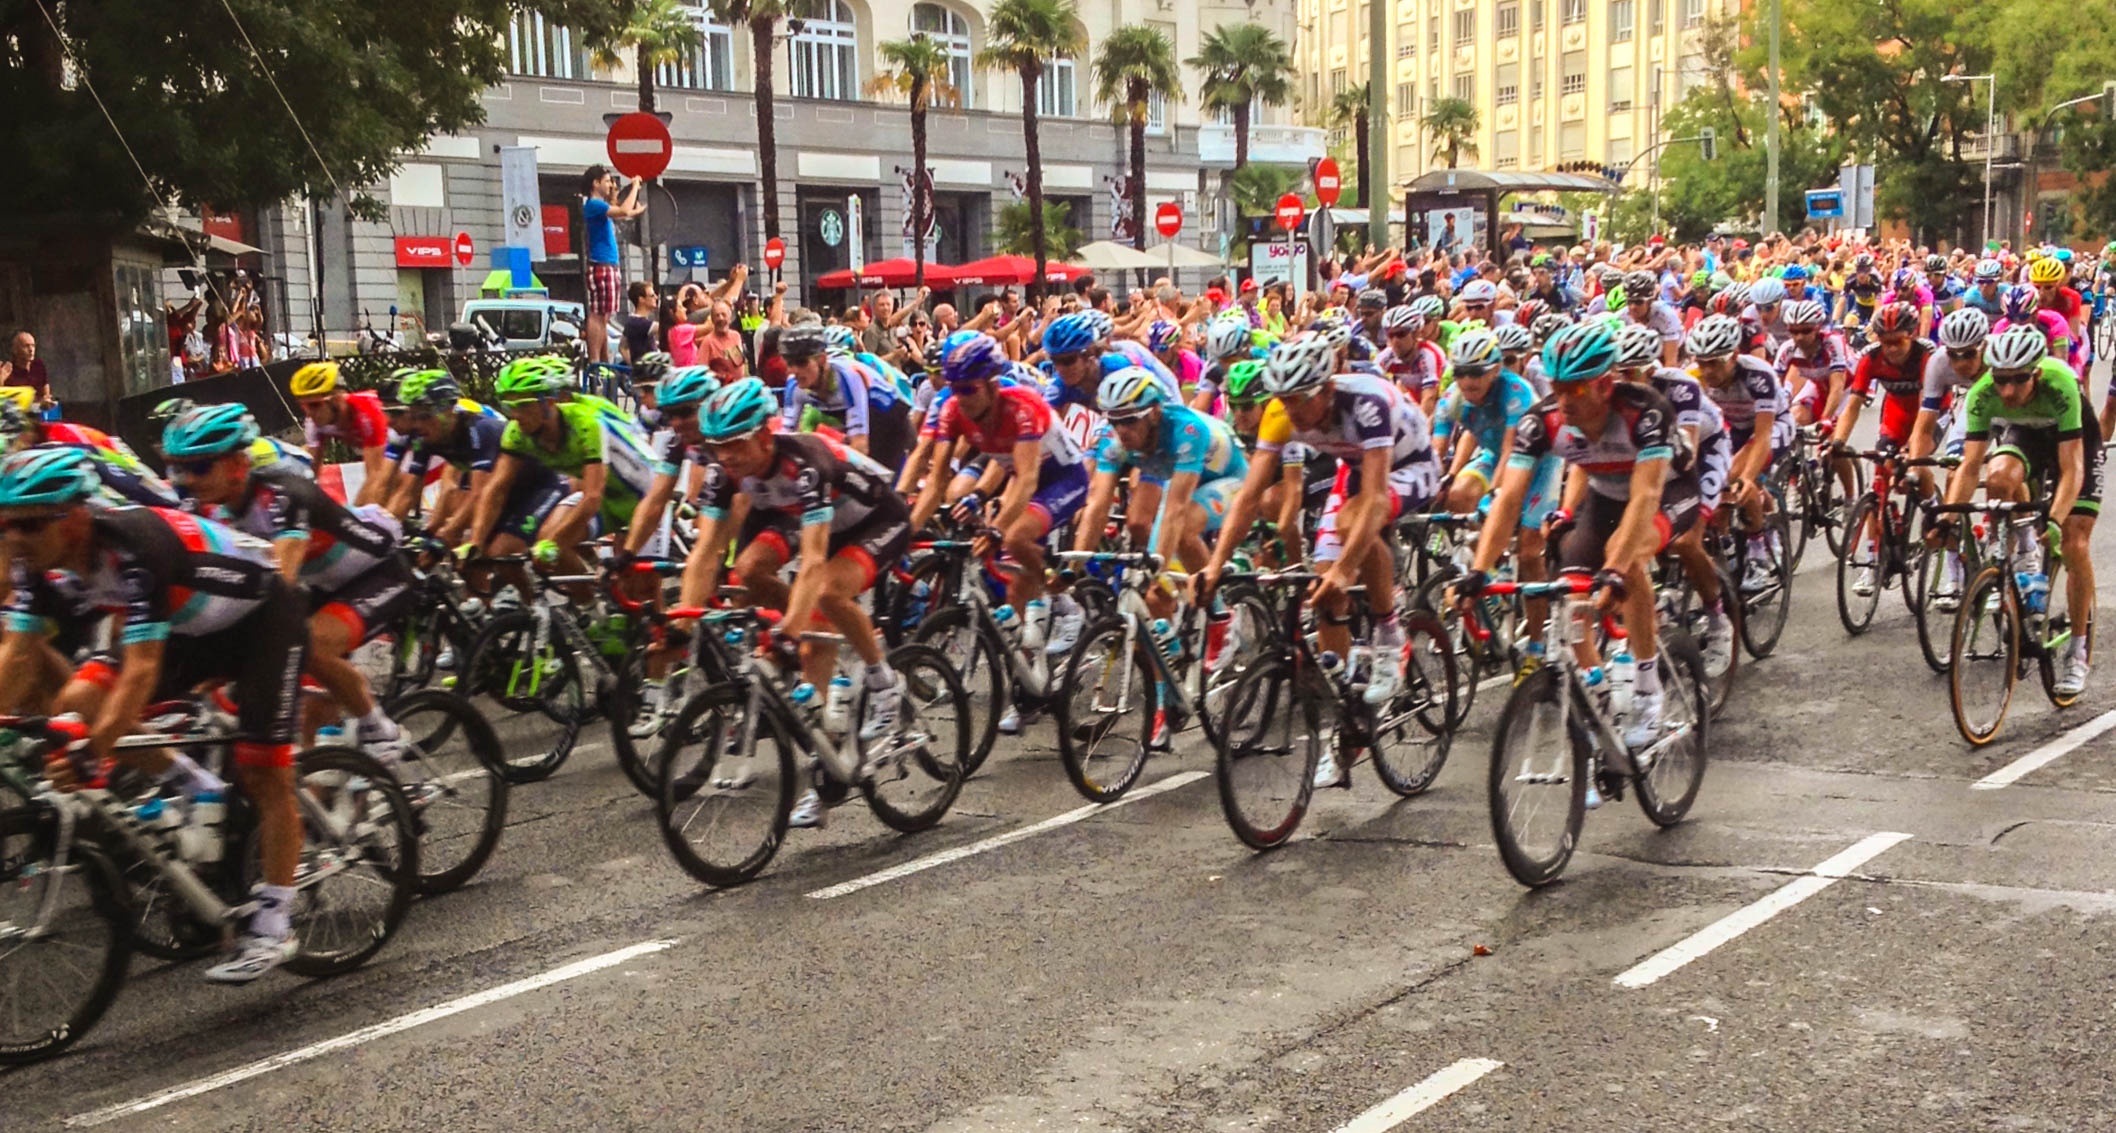 File:Stage 21 of the Vuelta a España 2013 in Madrid, Spain ...